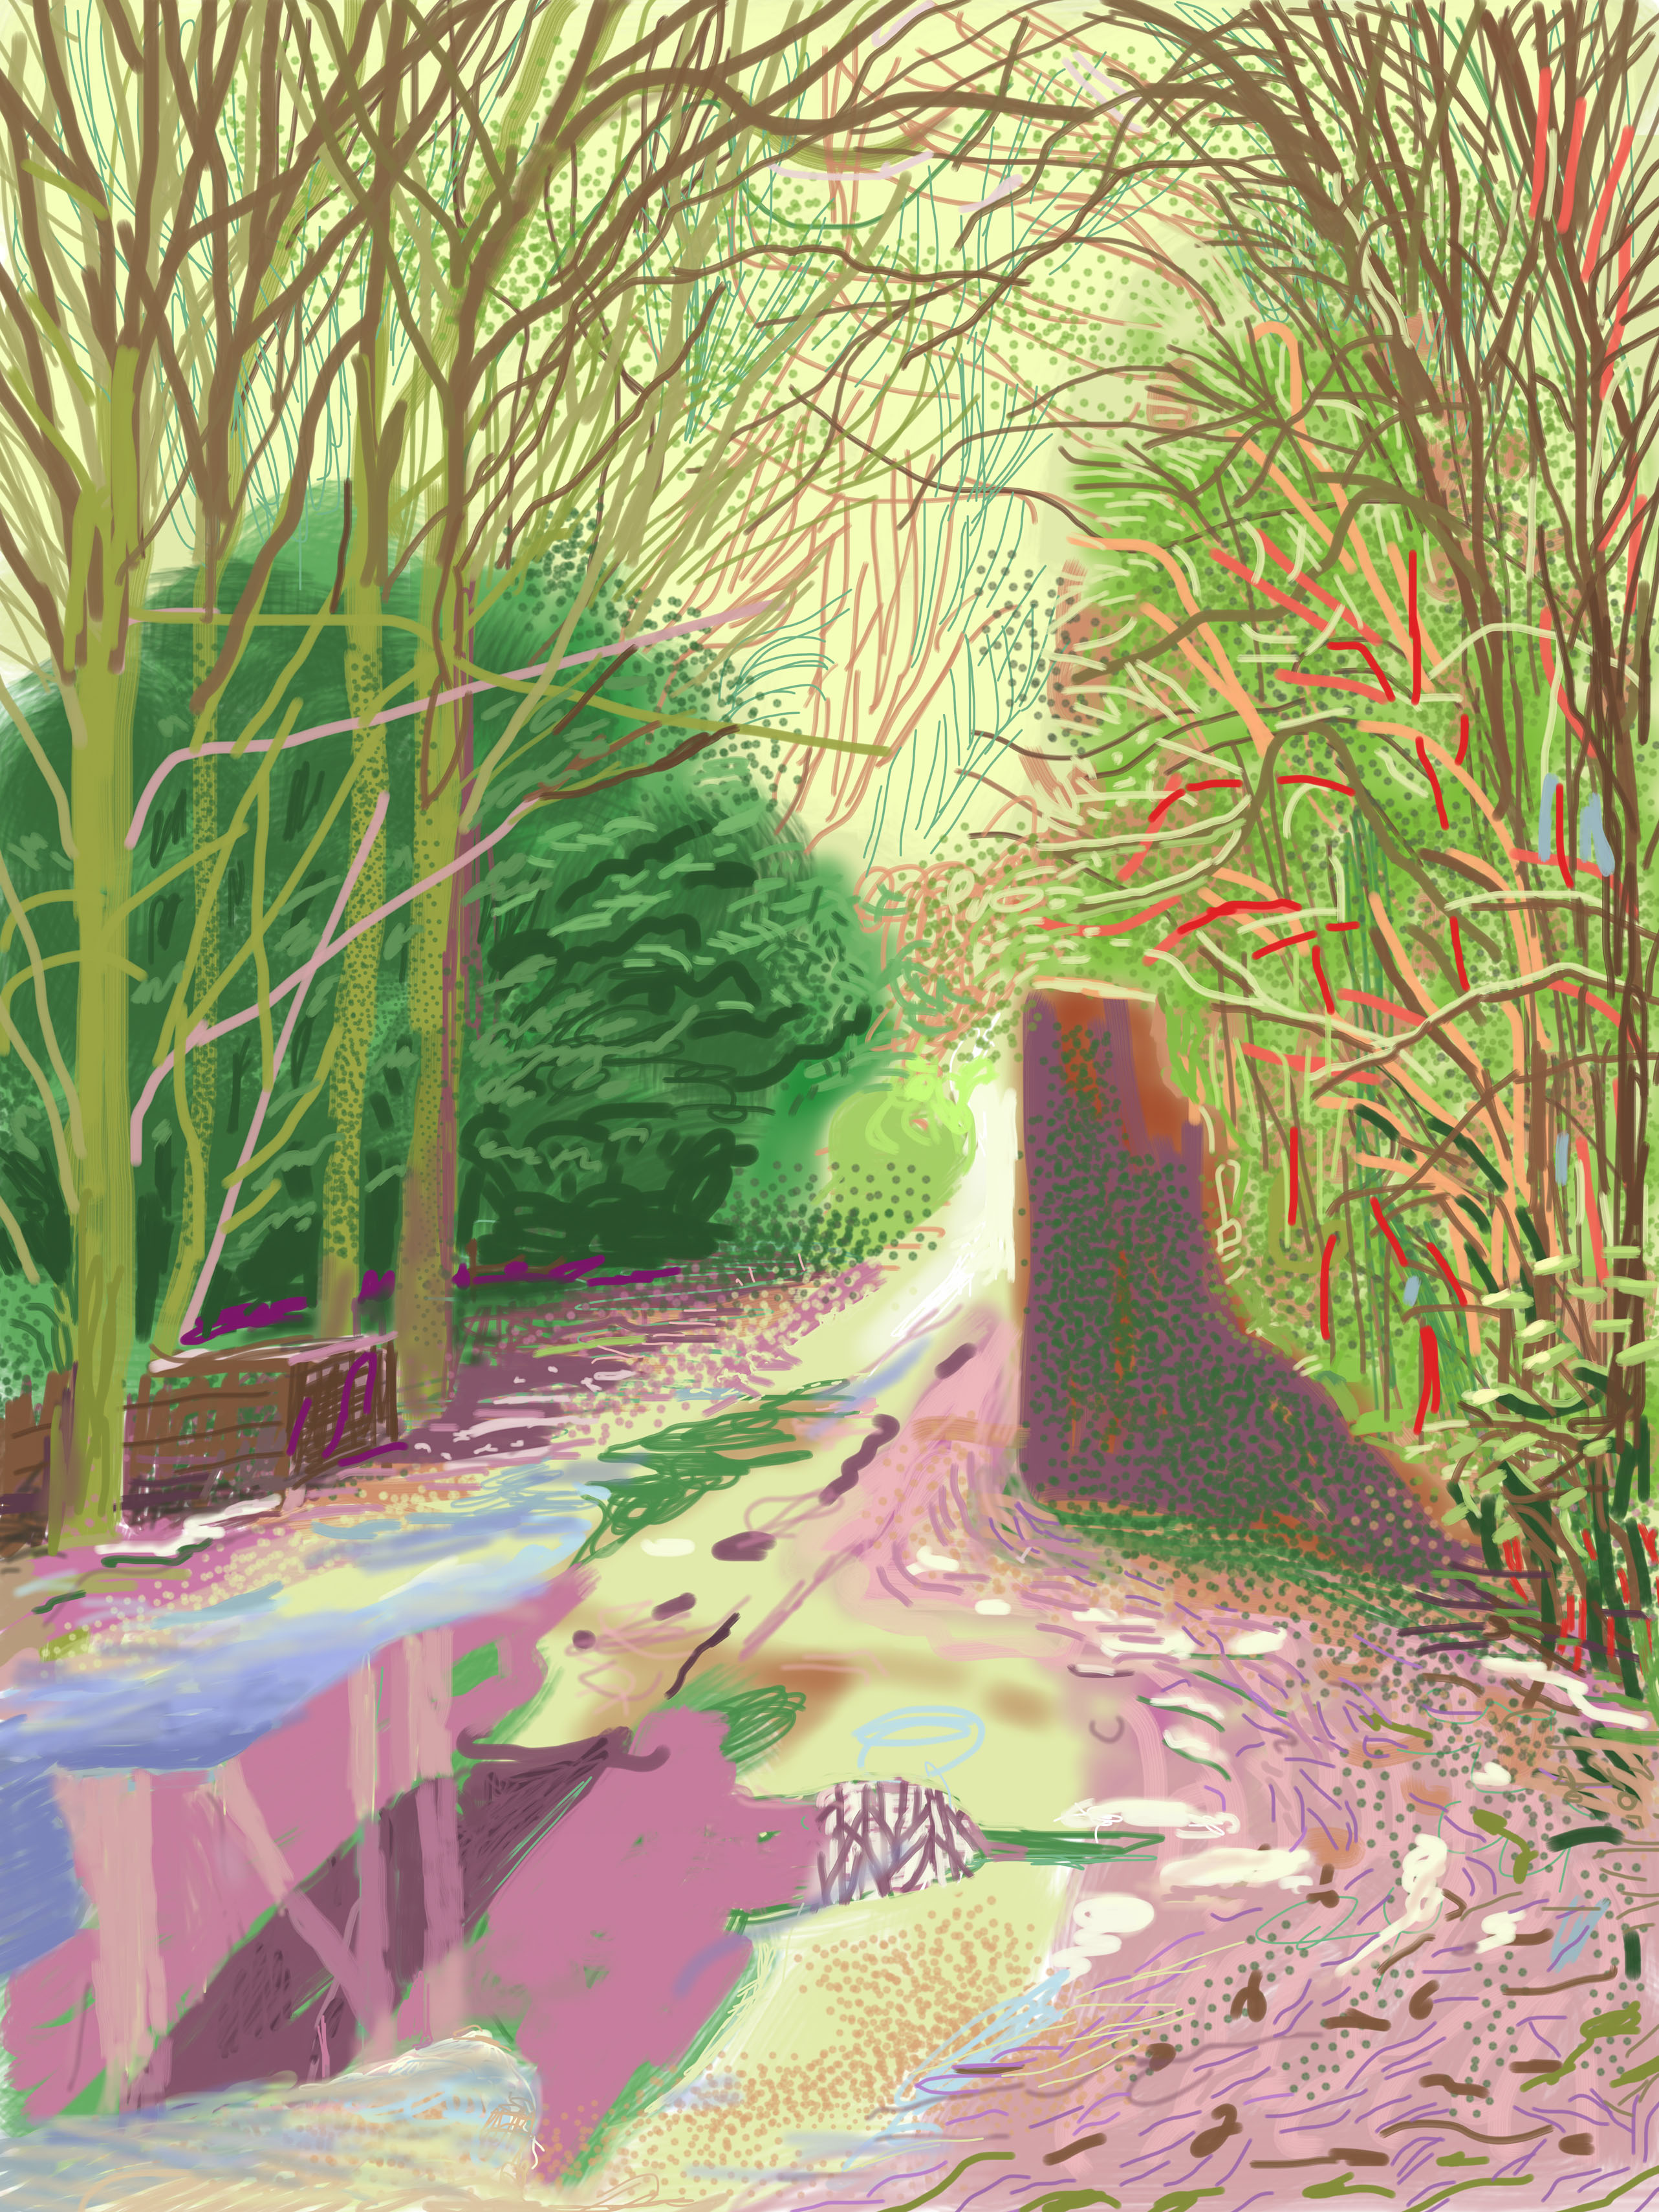 David Hockney, The Arrival of Spring in Woldgate, East Yorkshire in 2011 (twenty eleven) – 2 January